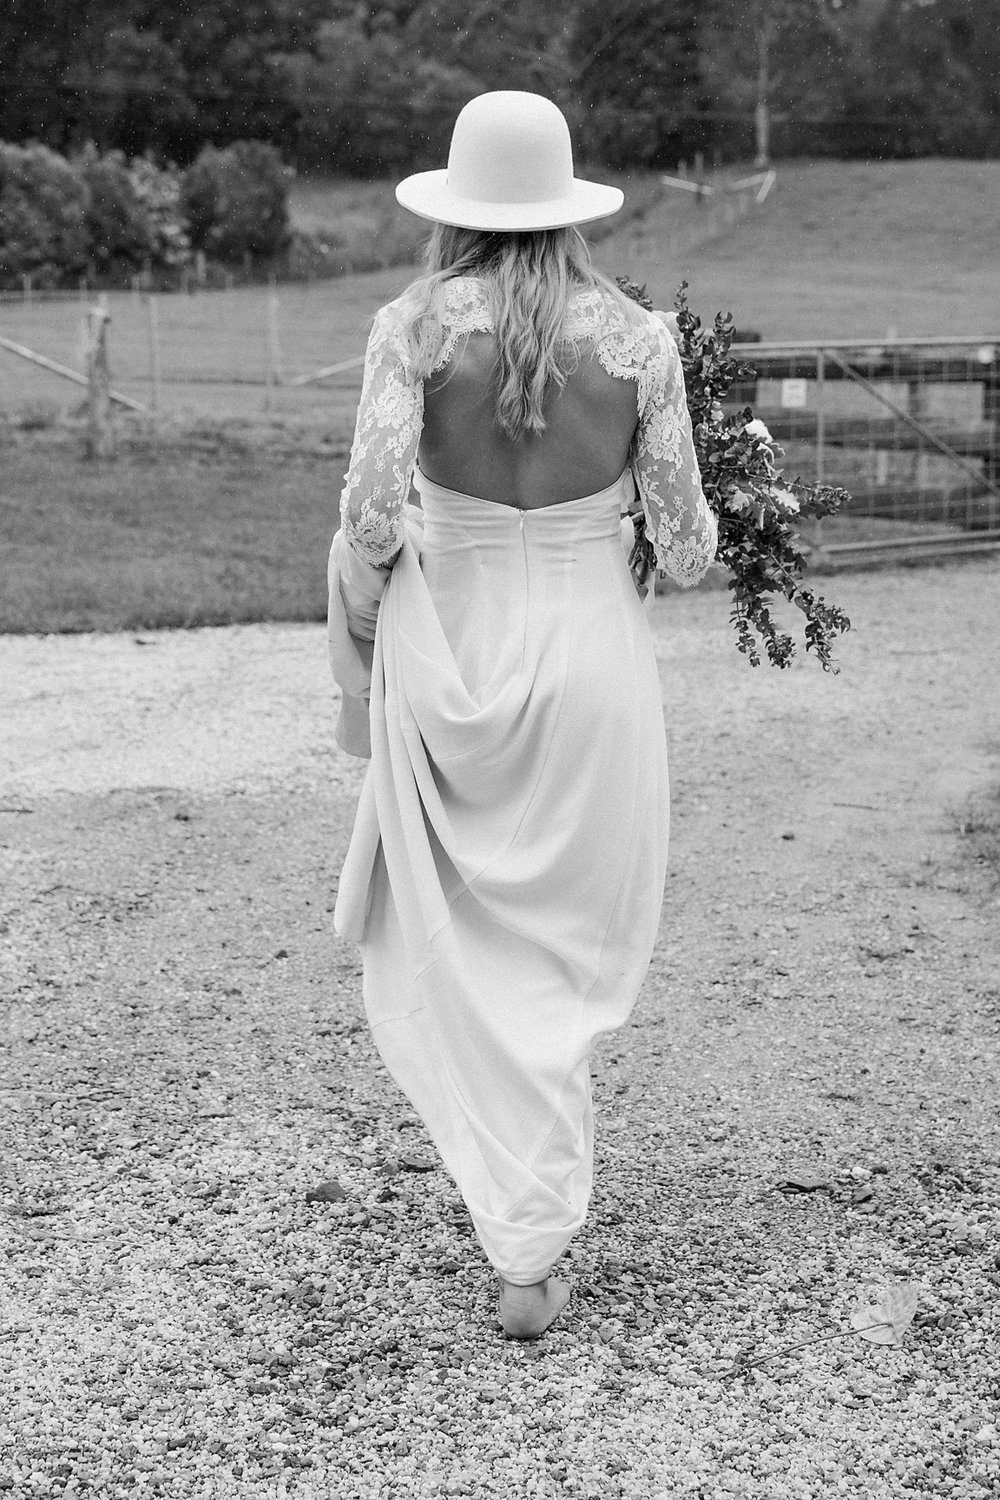 Dress by Studio C Bridal. Photography by Poppy & Sage Photography.